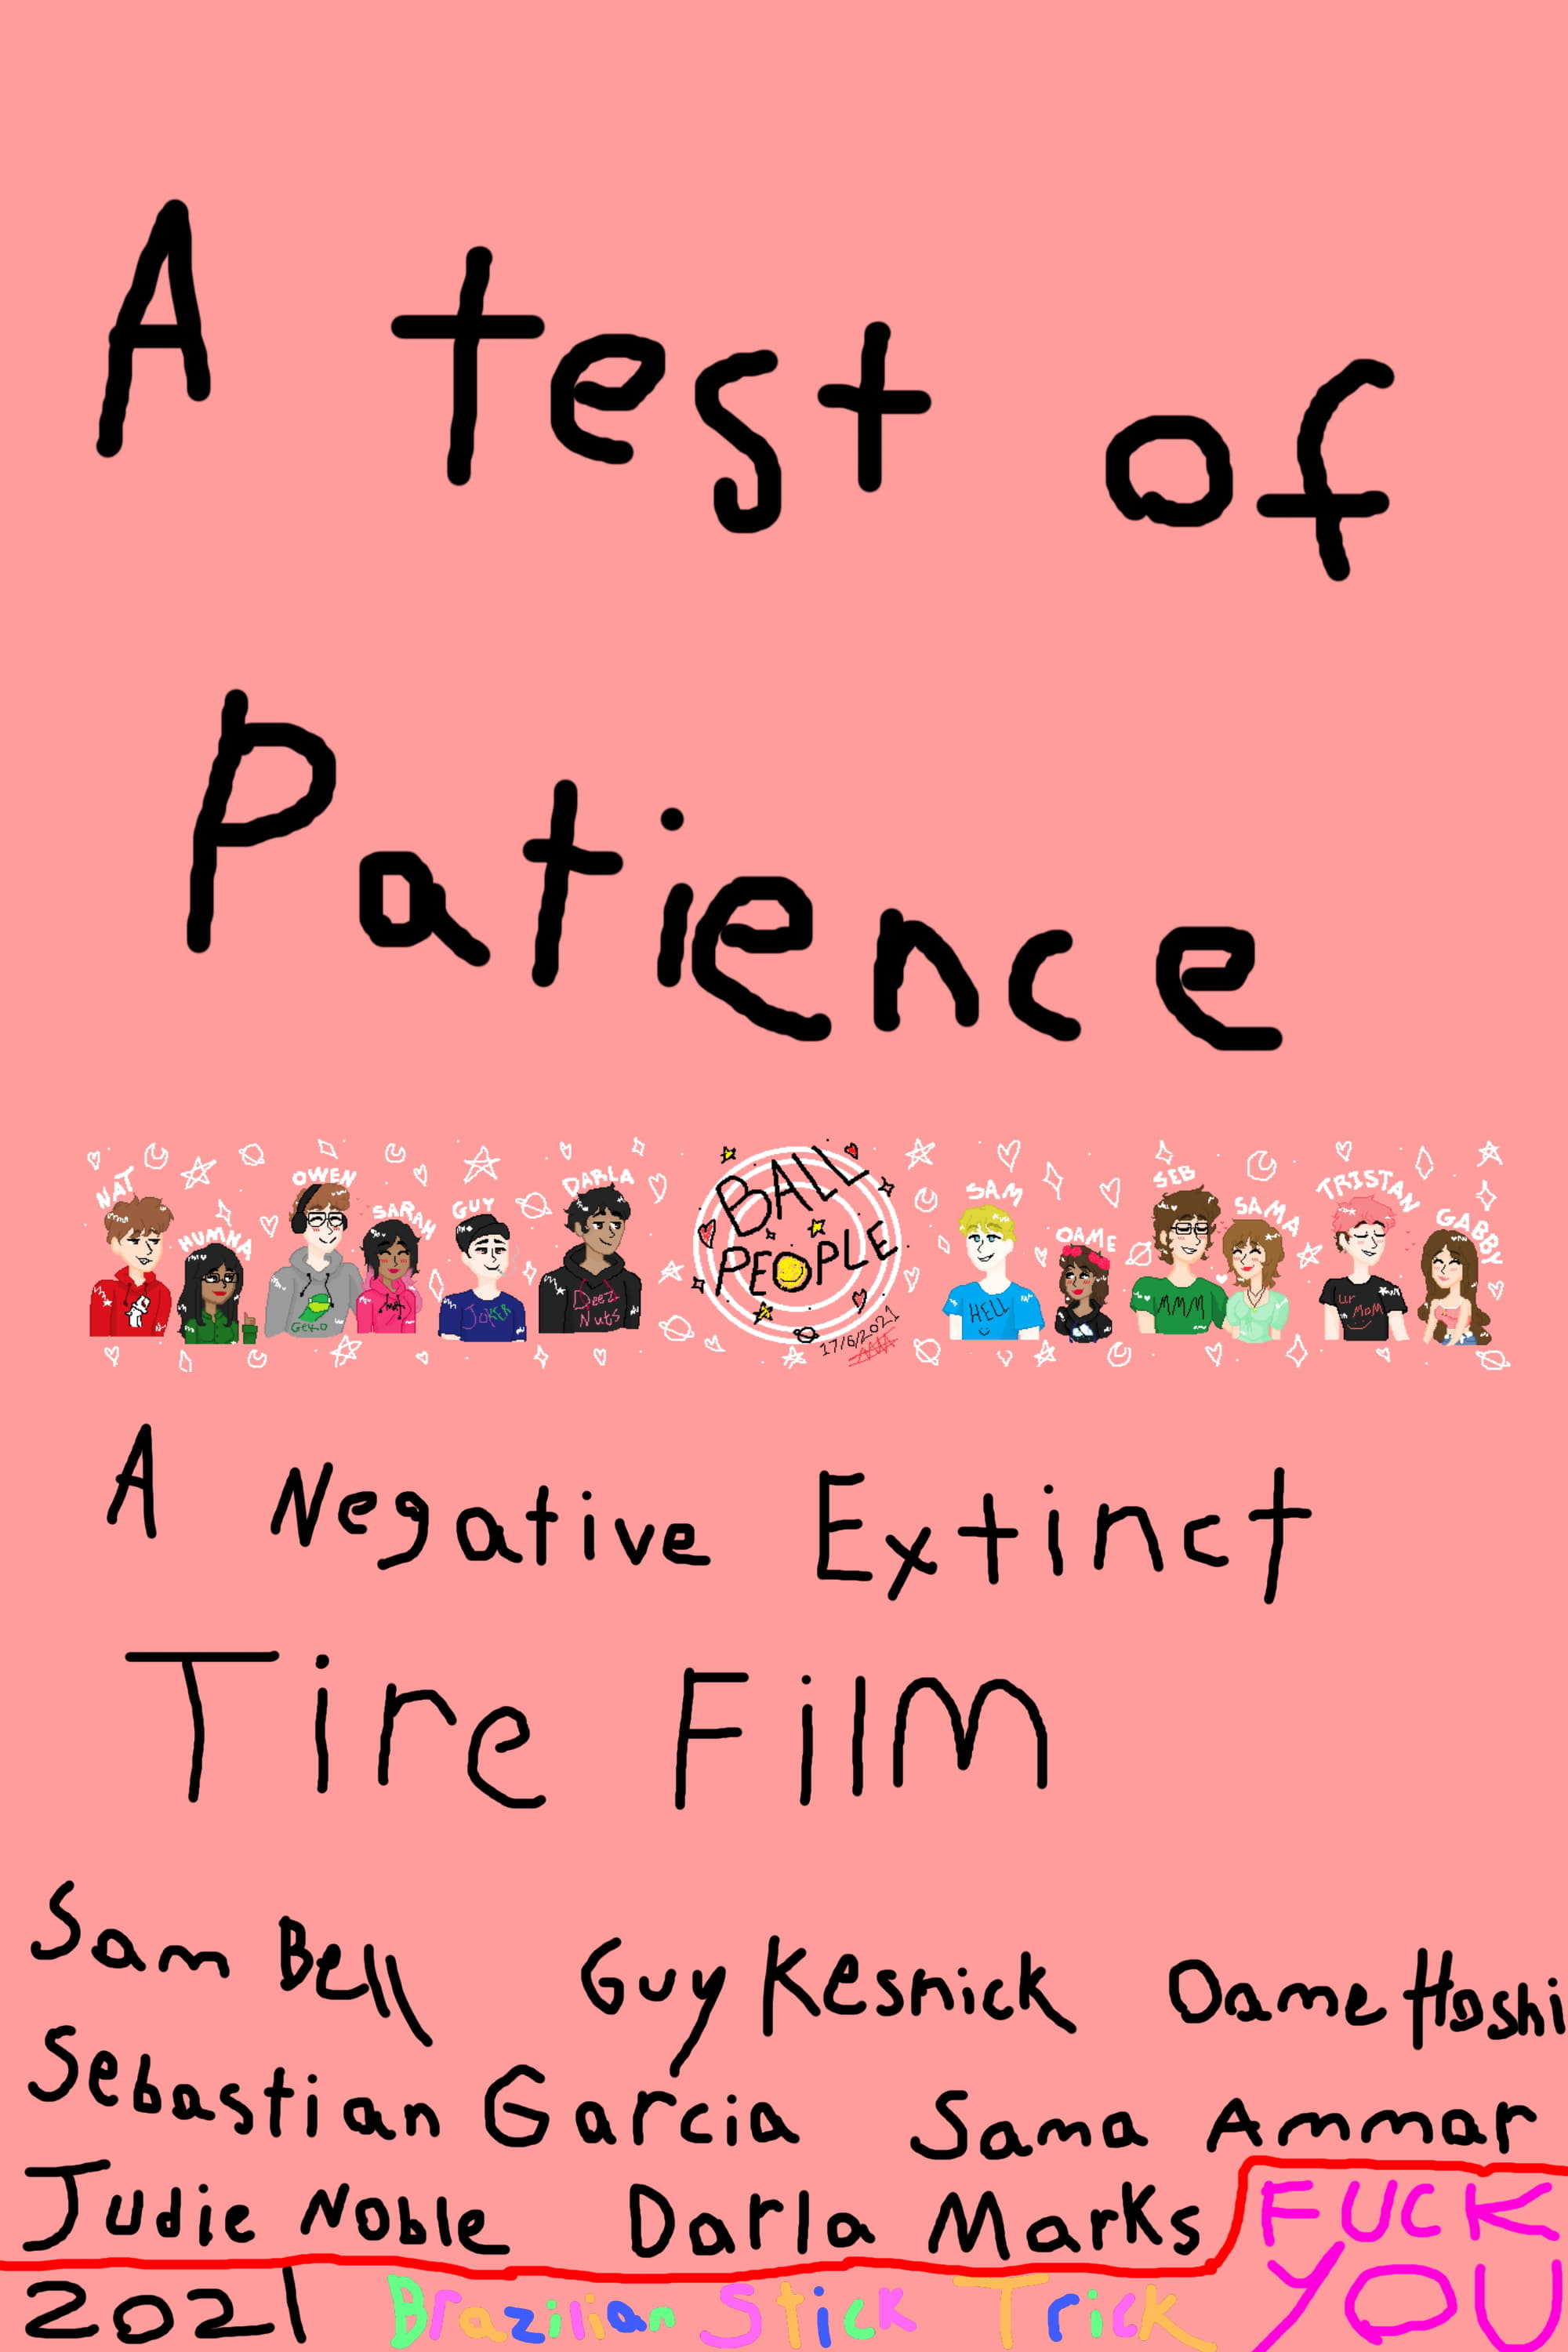 A Test of Patience: A Negative Extinct Tire Film (2021)